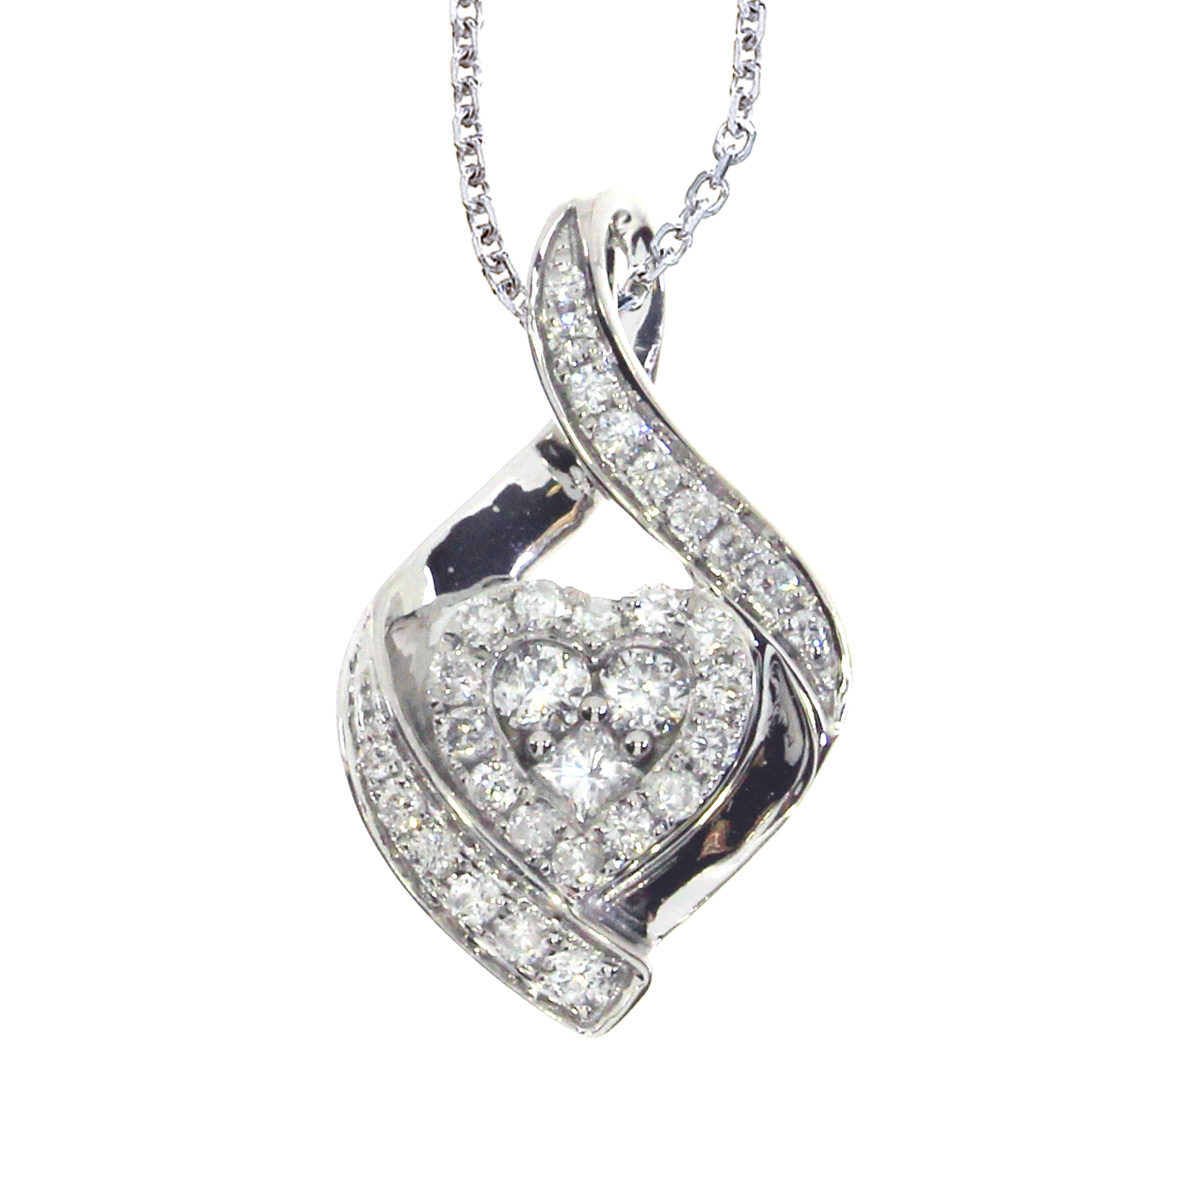 Beautiful shimmering 14k white gold heart shaped pendant covered in .37 carats of genuine bright diamonds.